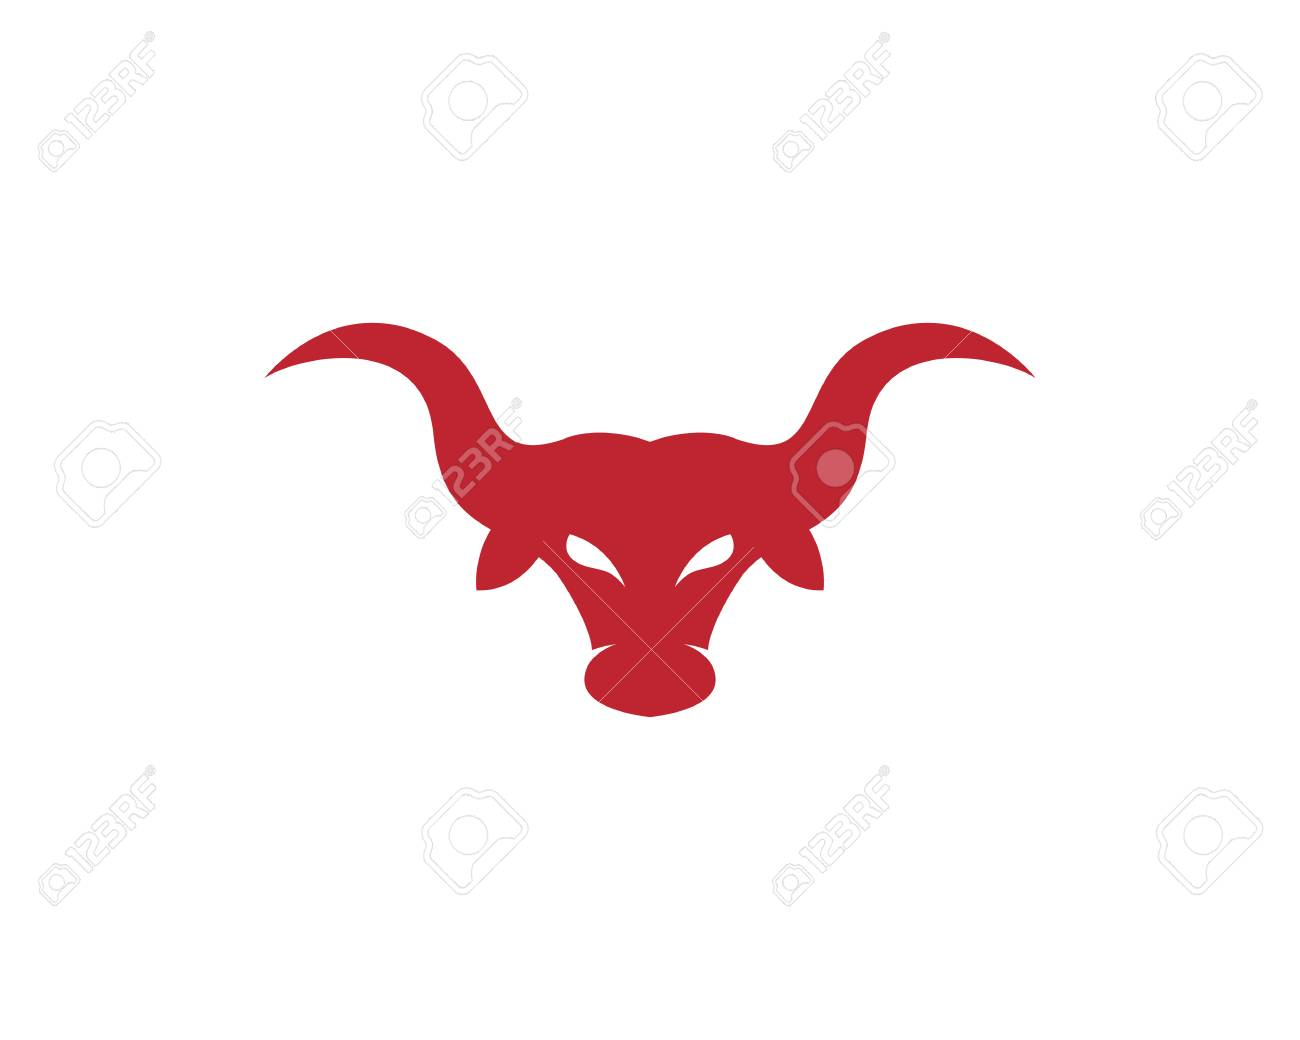 red bull taurus symbol template design royalty free cliparts